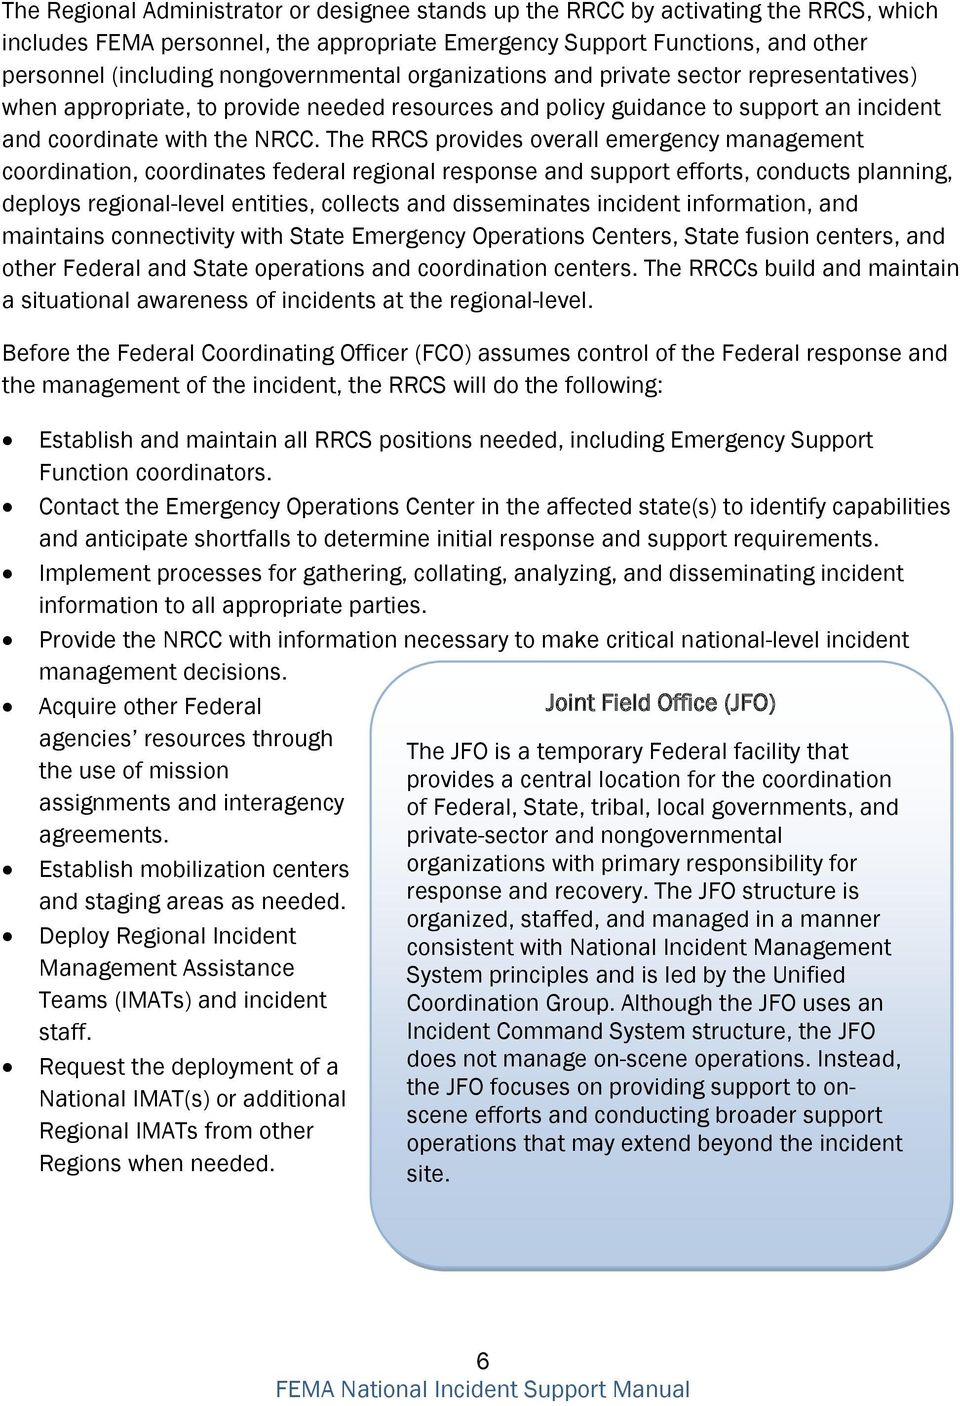 The RRCS provides overall emergency management coordination, coordinates federal regional response and support efforts, conducts planning, deploys regional-level entities, collects and disseminates